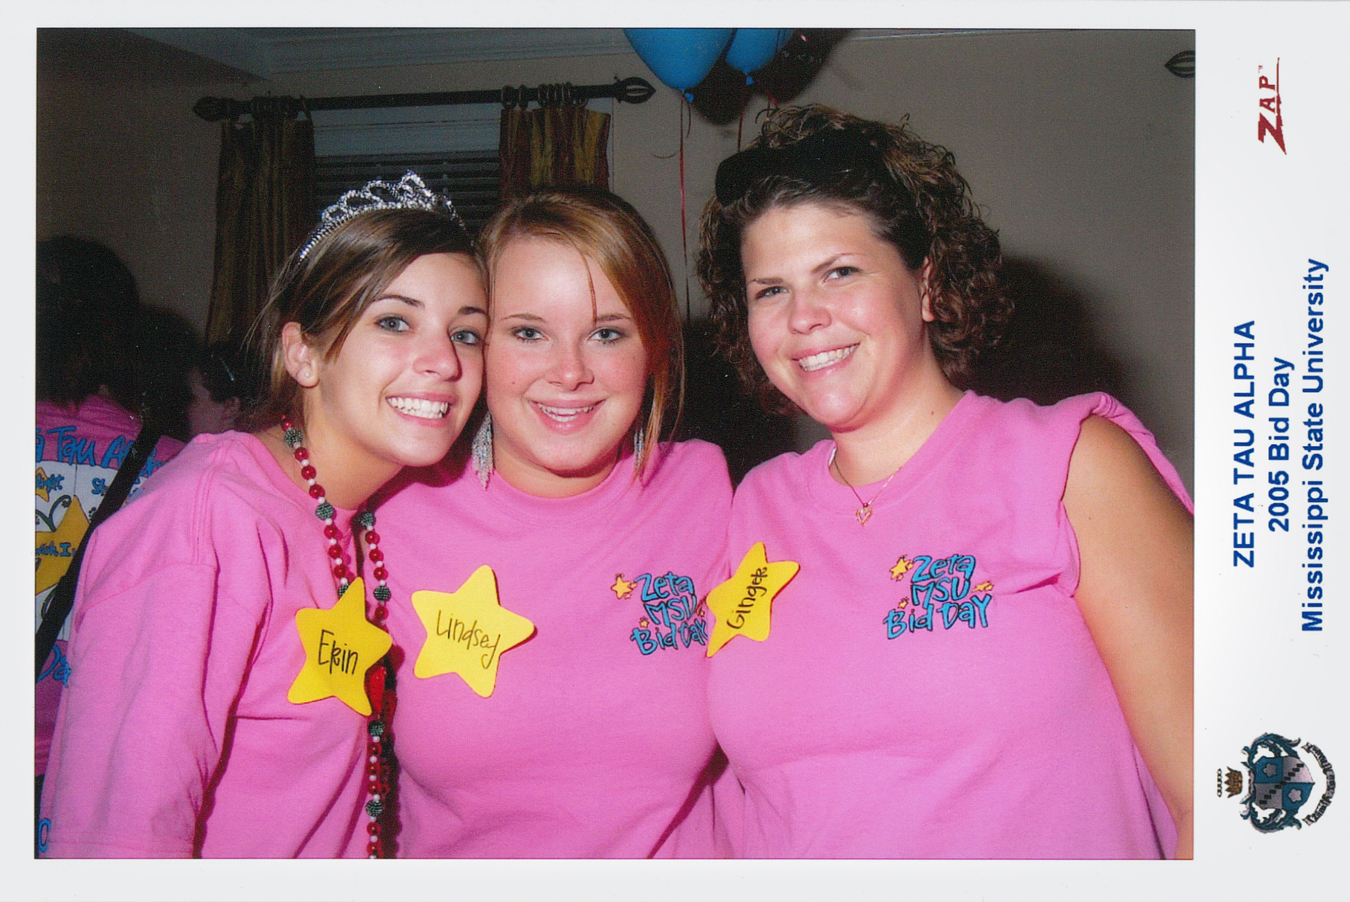 05-zeta-tau-alpha-mississippi-state-junior-year-bid-day-2005-lindsey-archer